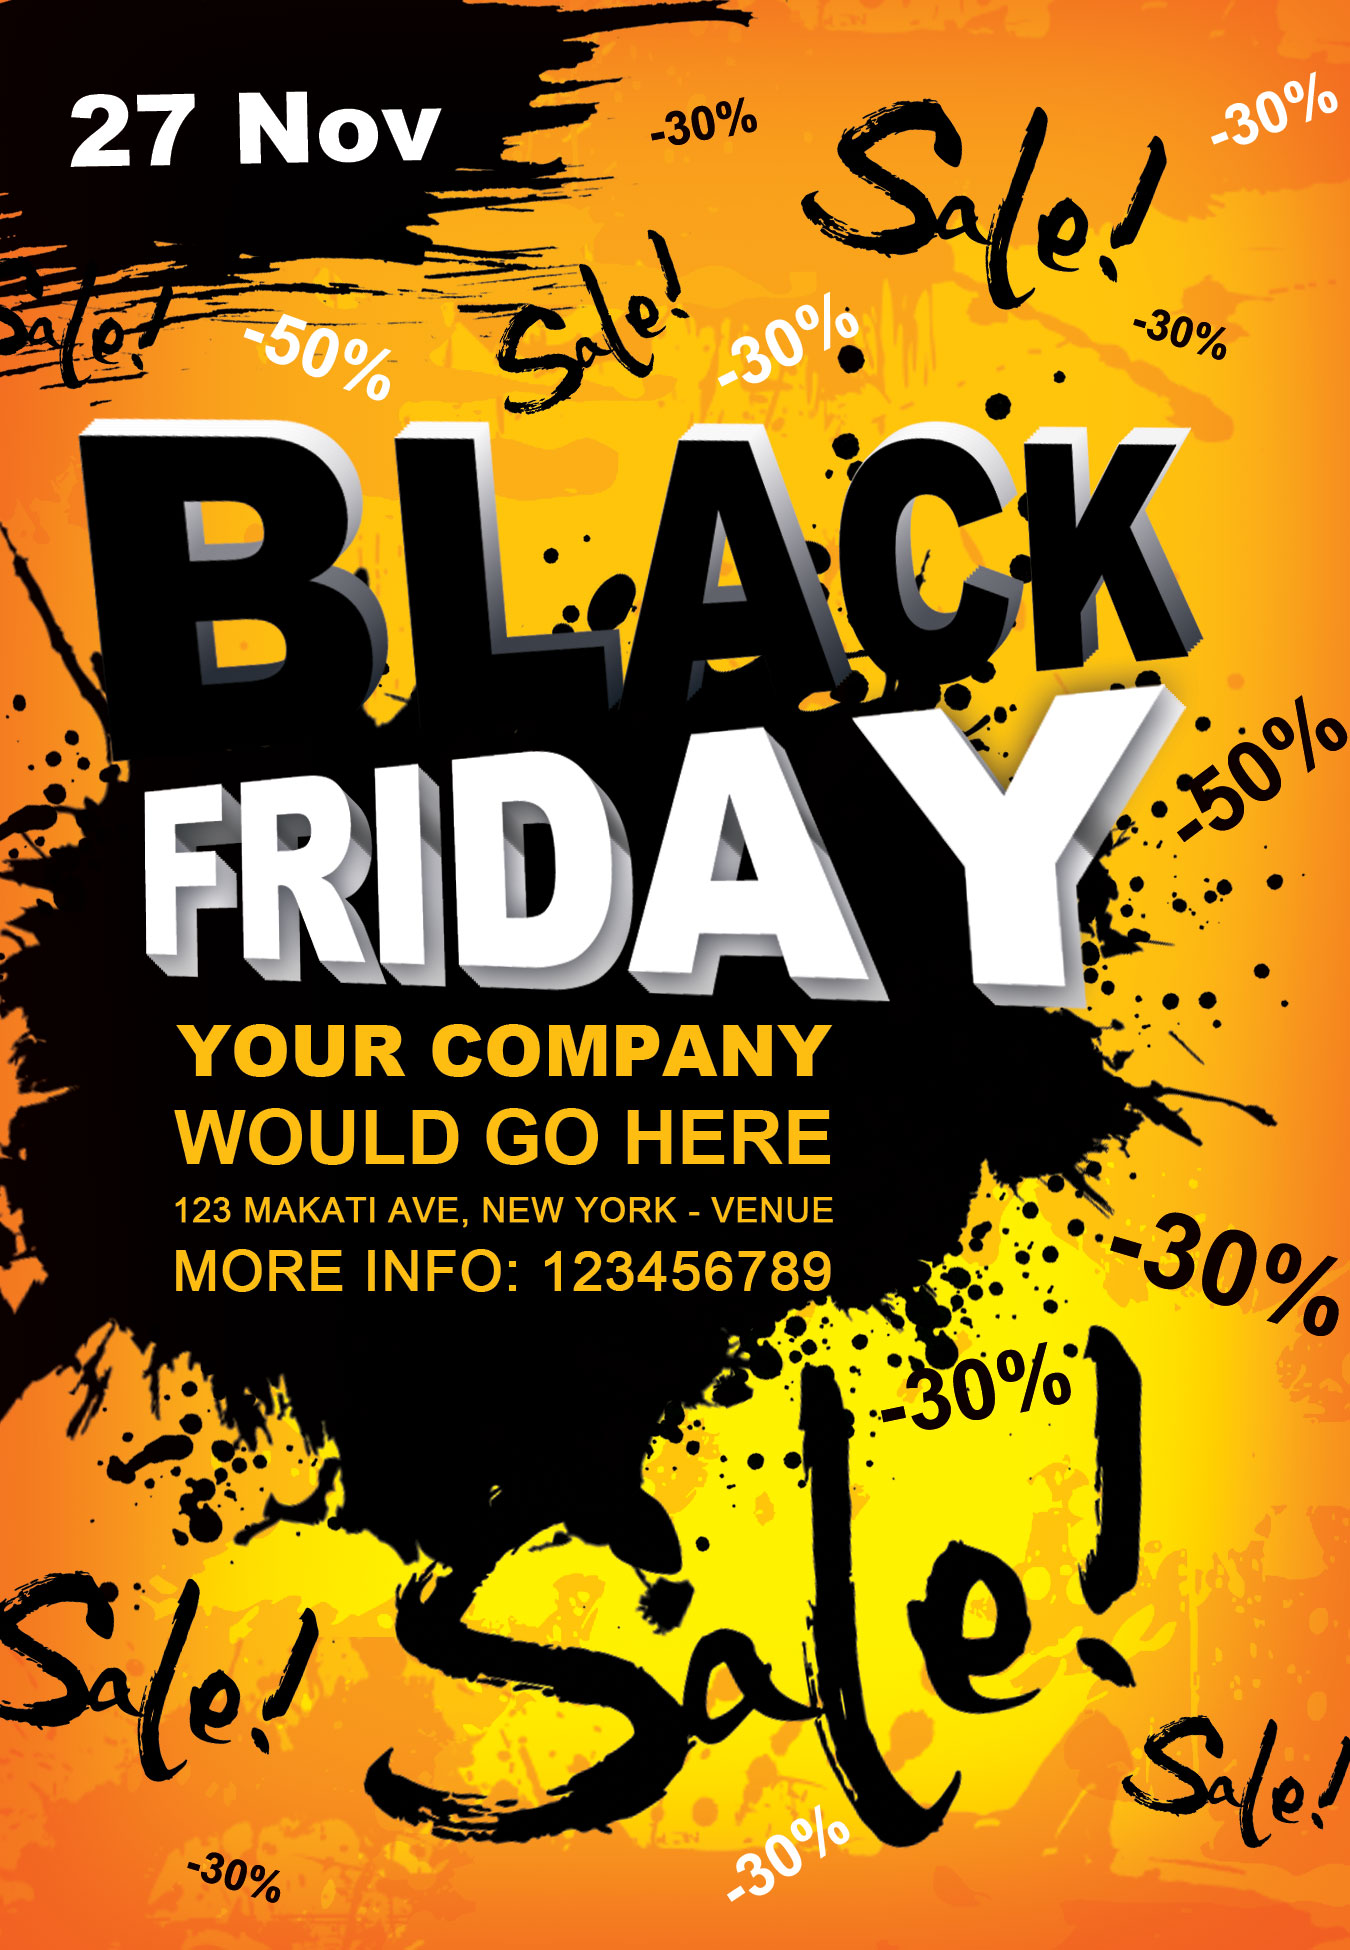 Black-Friday-Nov-27_